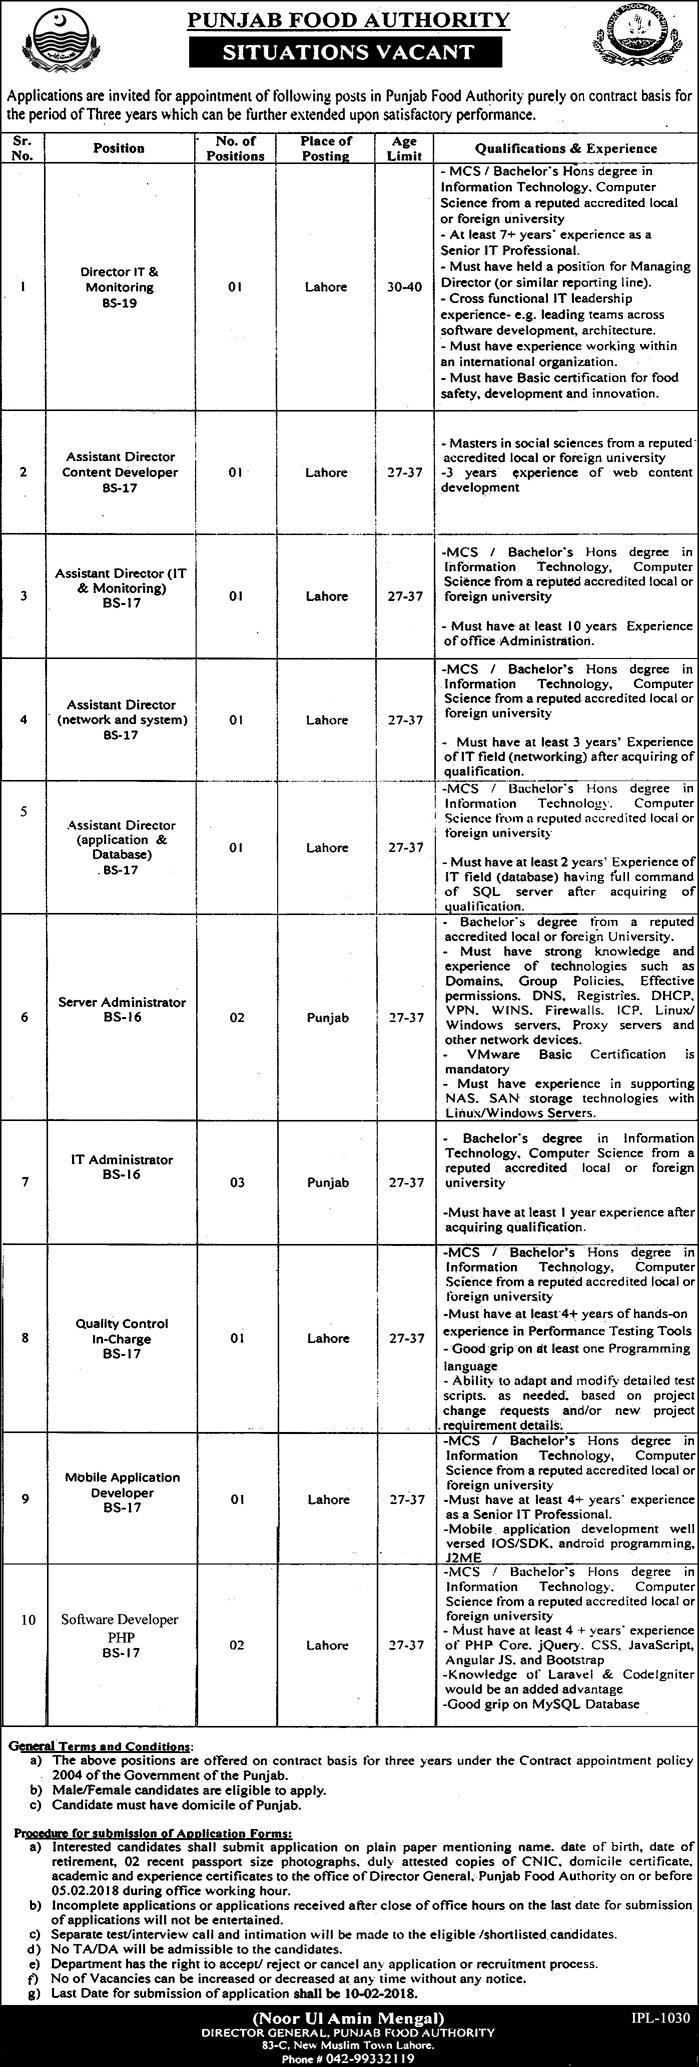 Punjab Food Authority, 14 Jobs, 22 January 2018 Daily Express Newspaper